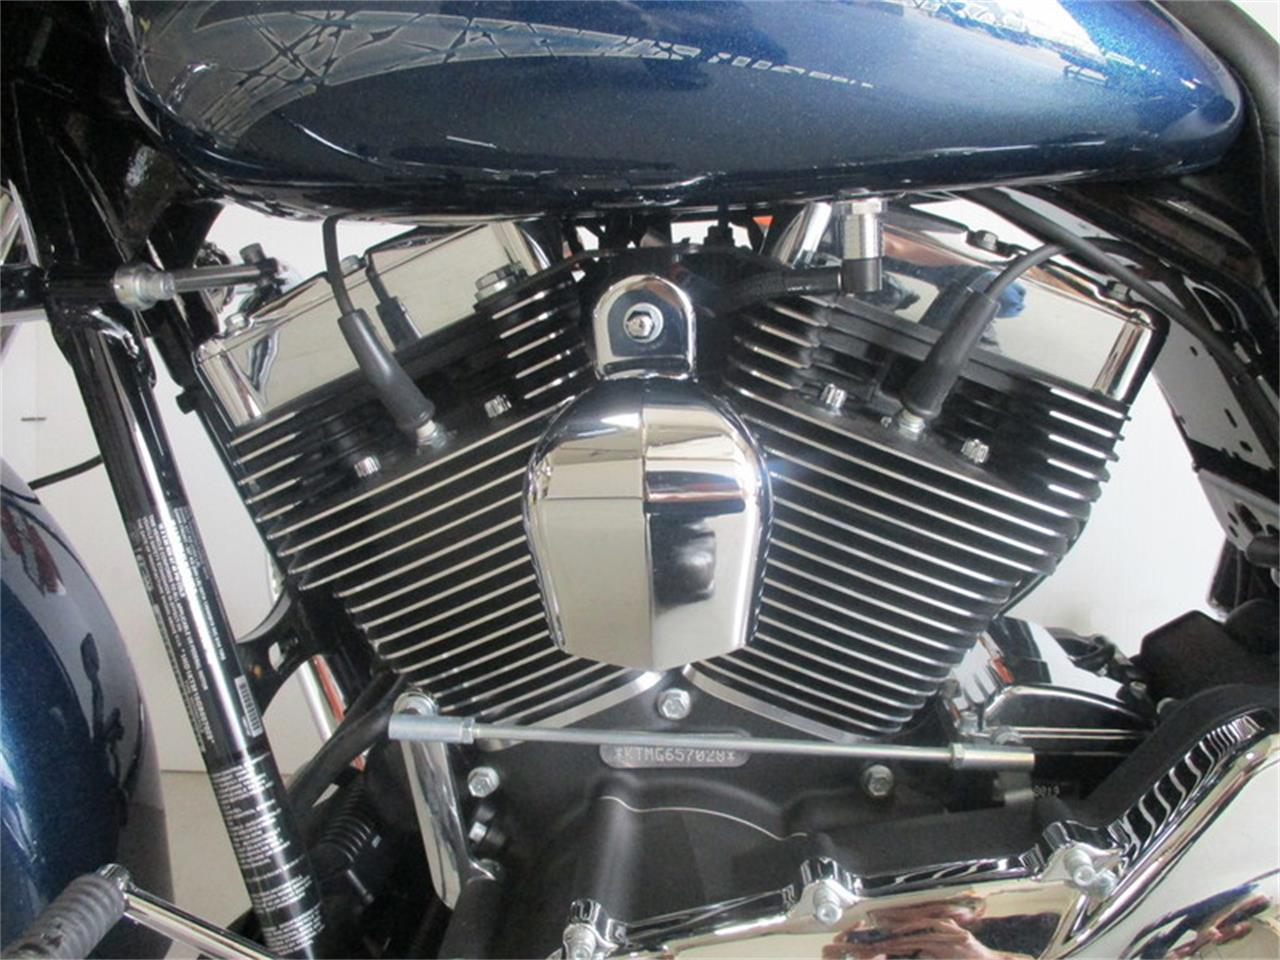 Large Picture of '16 FLTRXS - Road Glide® Special located in Thiensville Wisconsin - M9FJ